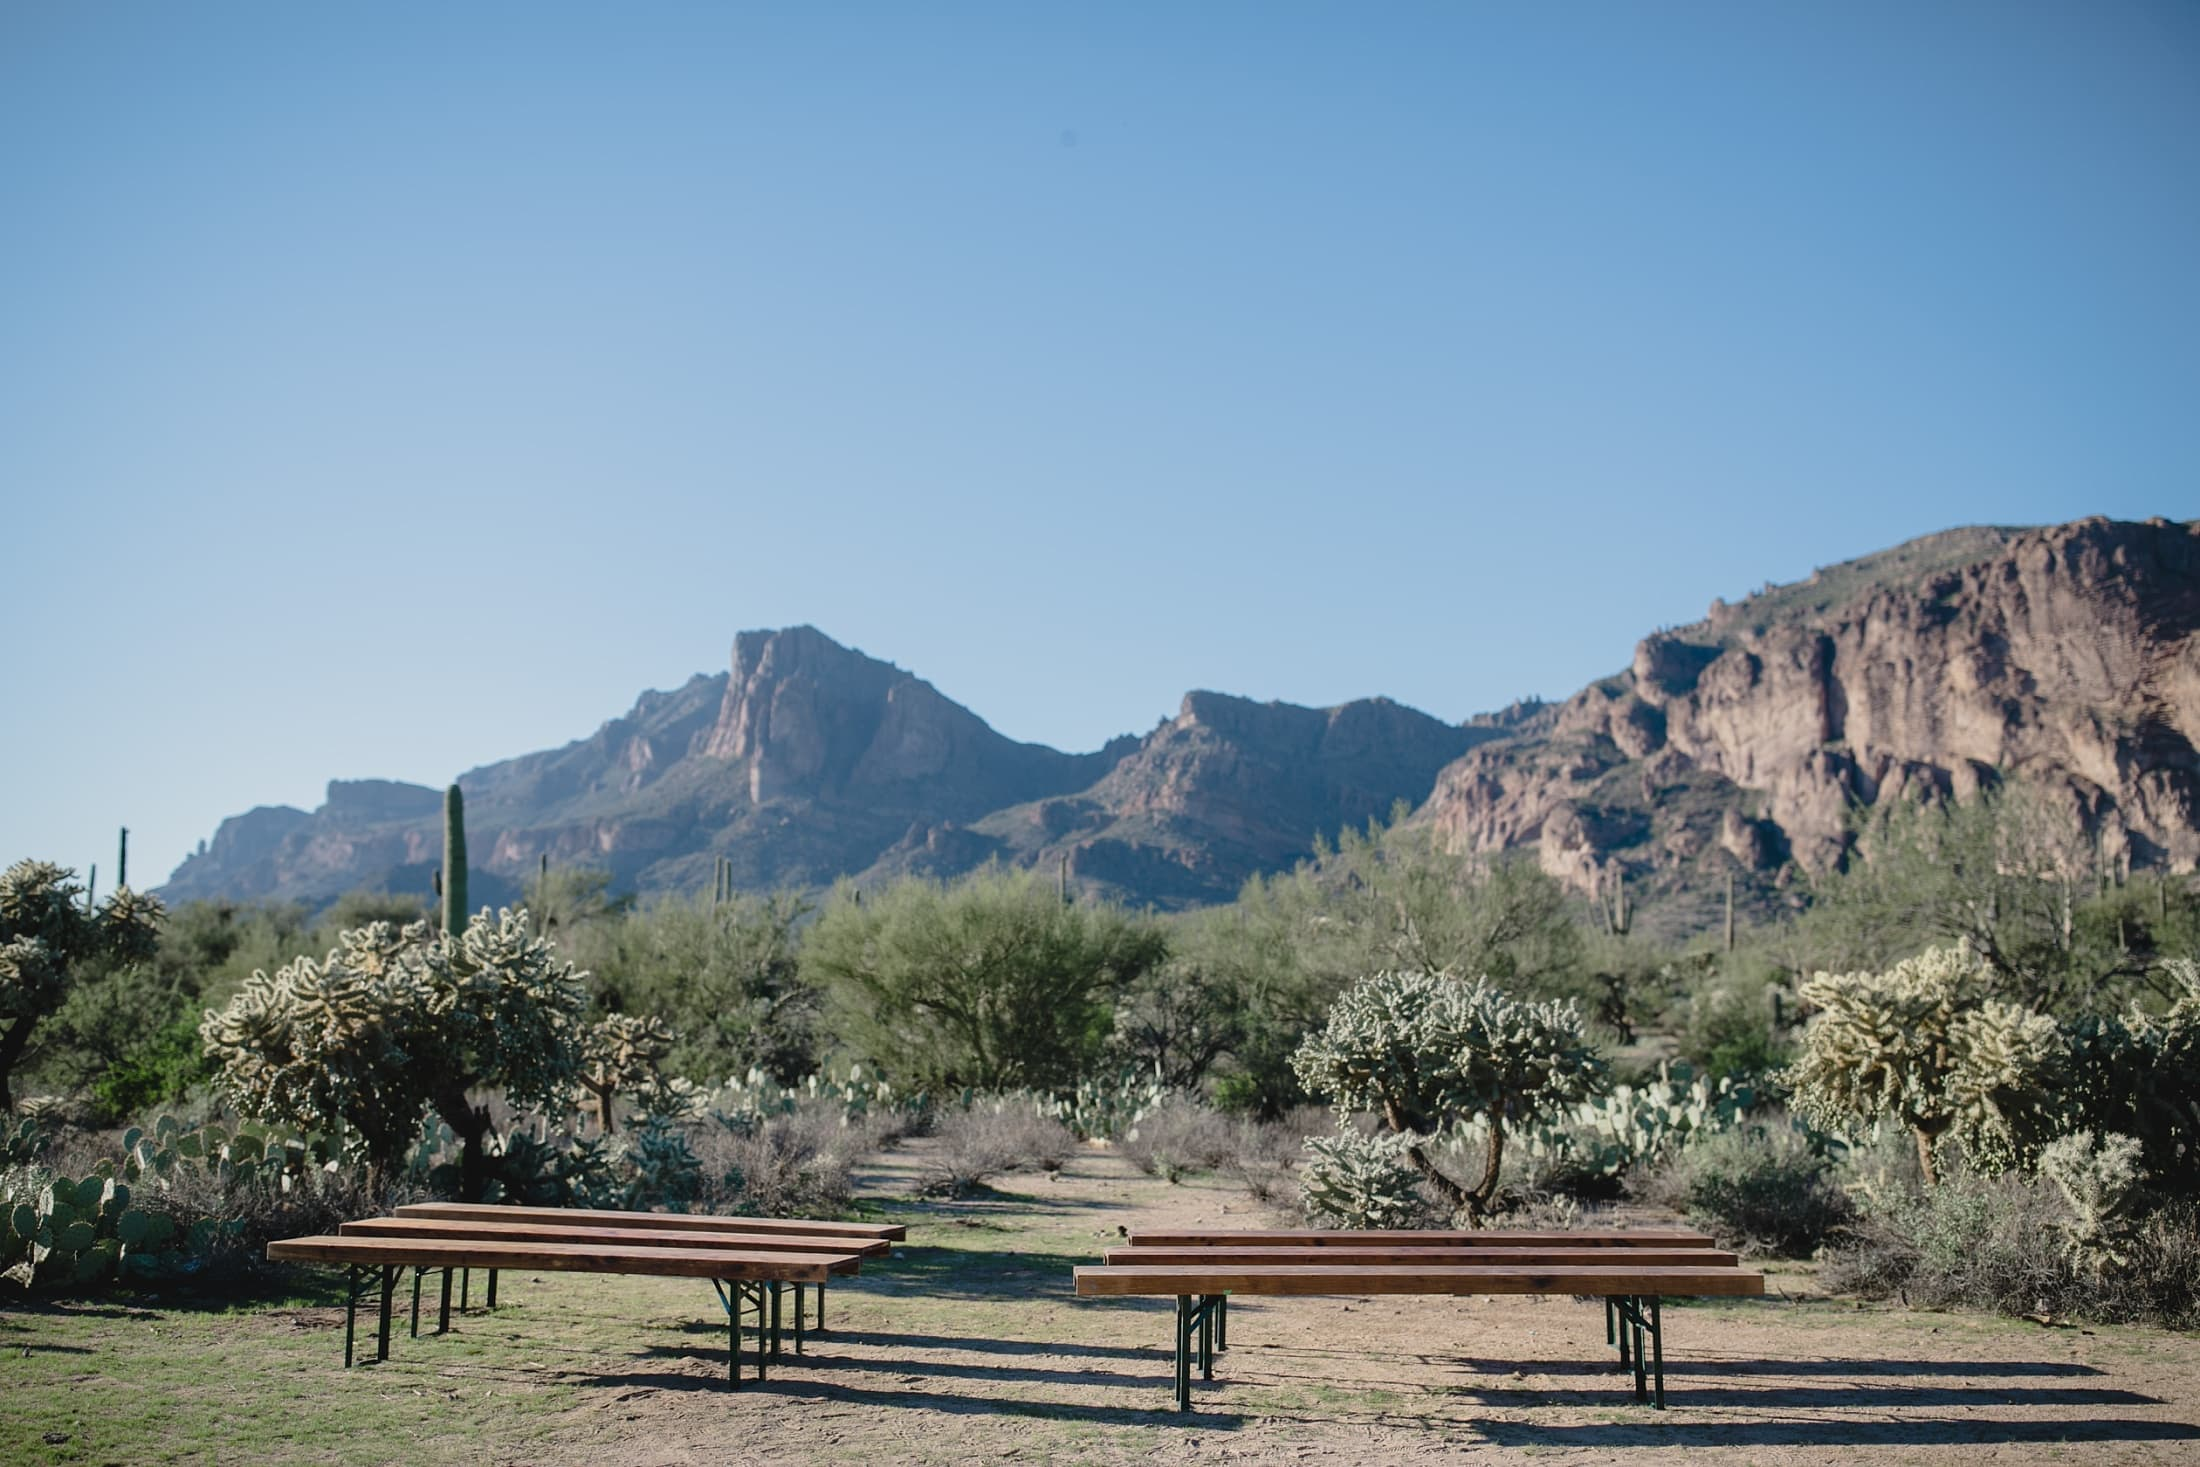 small intimate wedding in Arizona desert with mountains